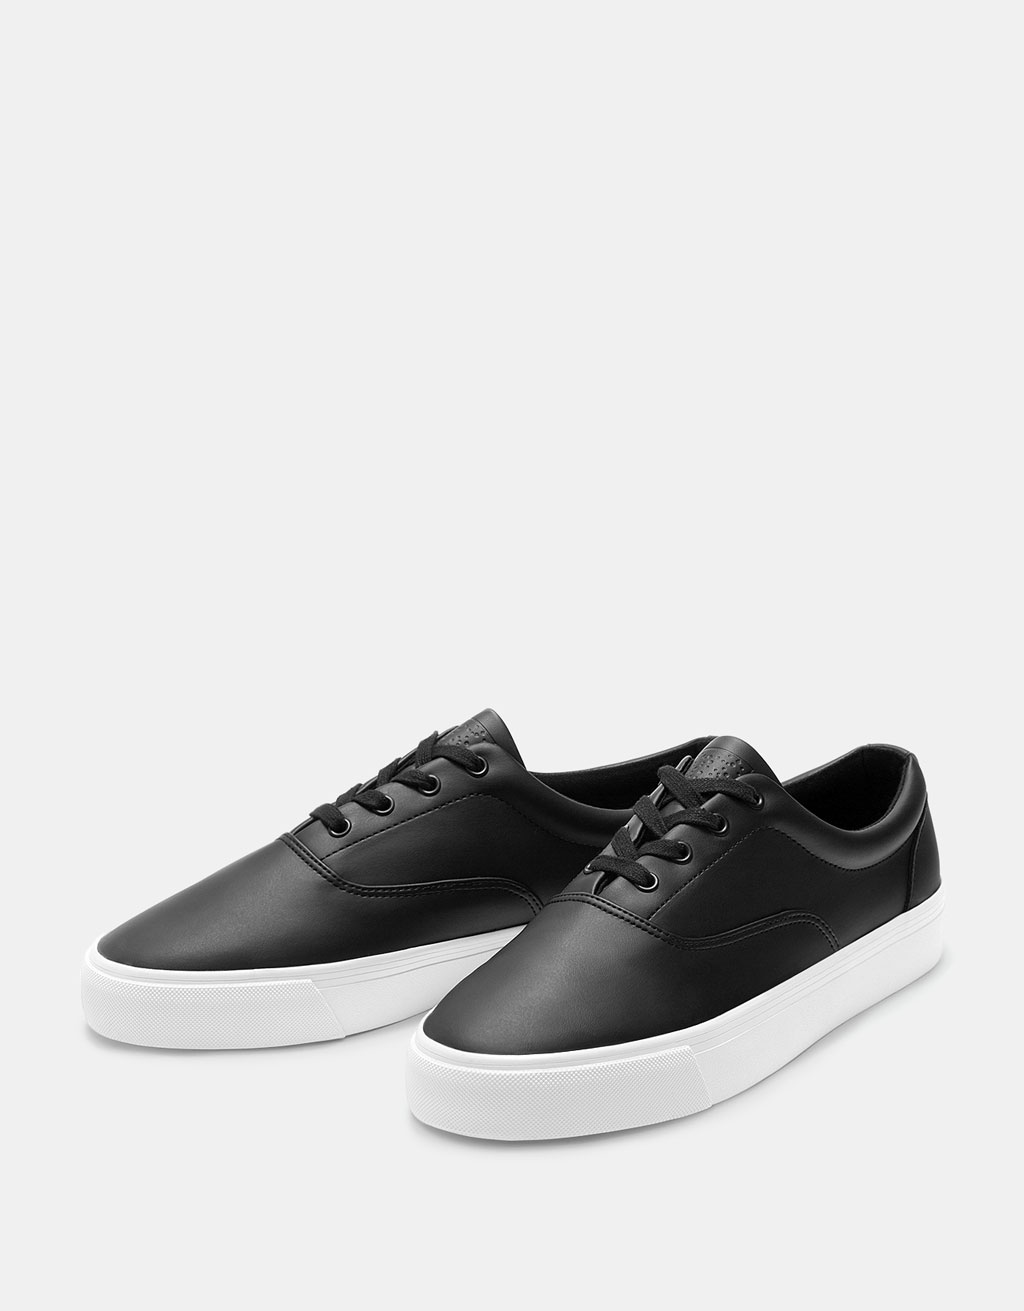 Men's single-colour sneakers